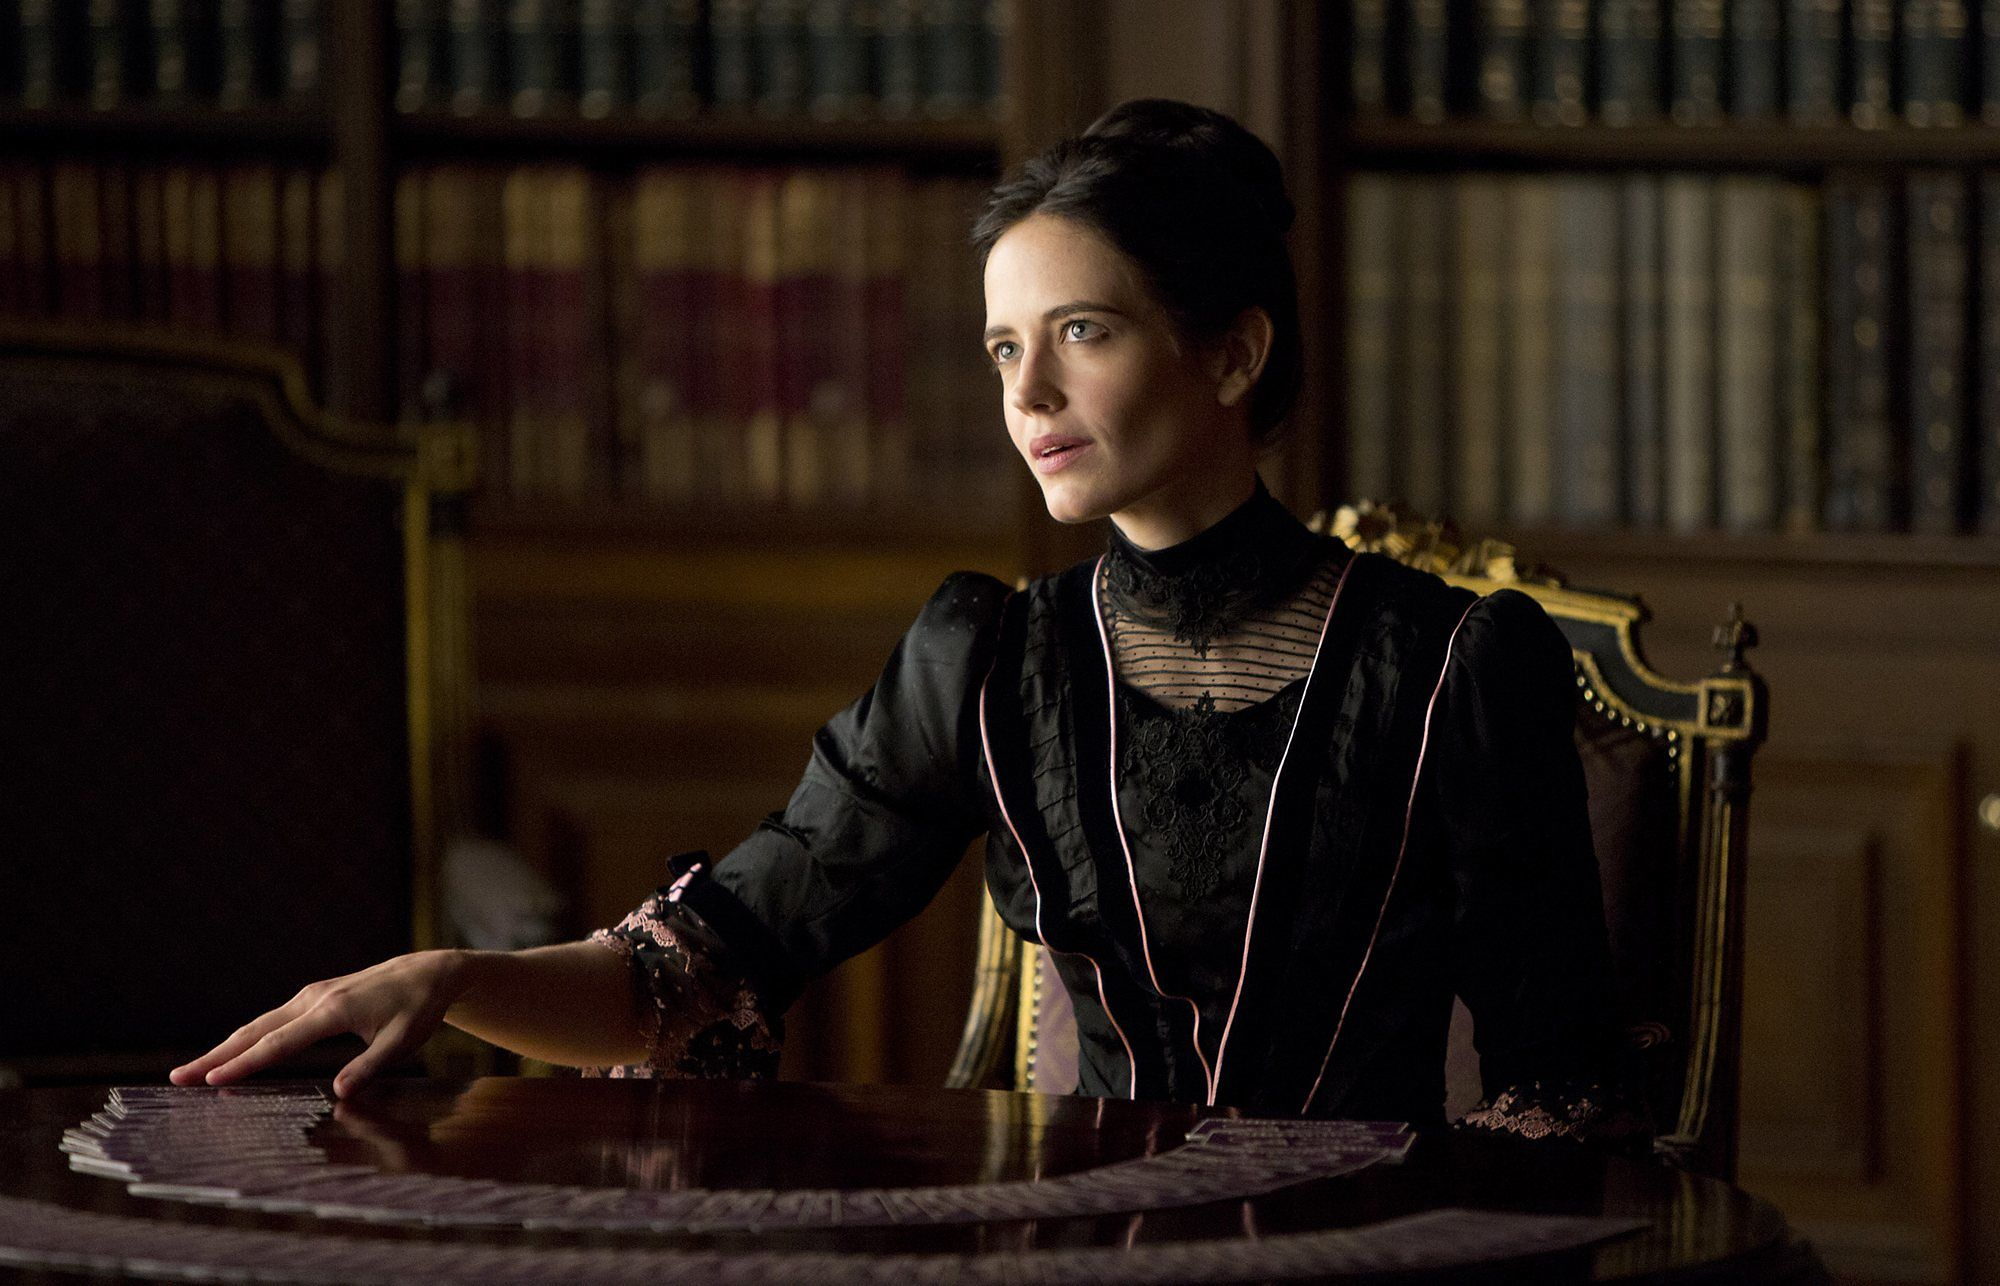 Penny Dreadful Hd Wallpaper  Background Image  2000X1286  Id597490 - Wallpaper Abyss-7176